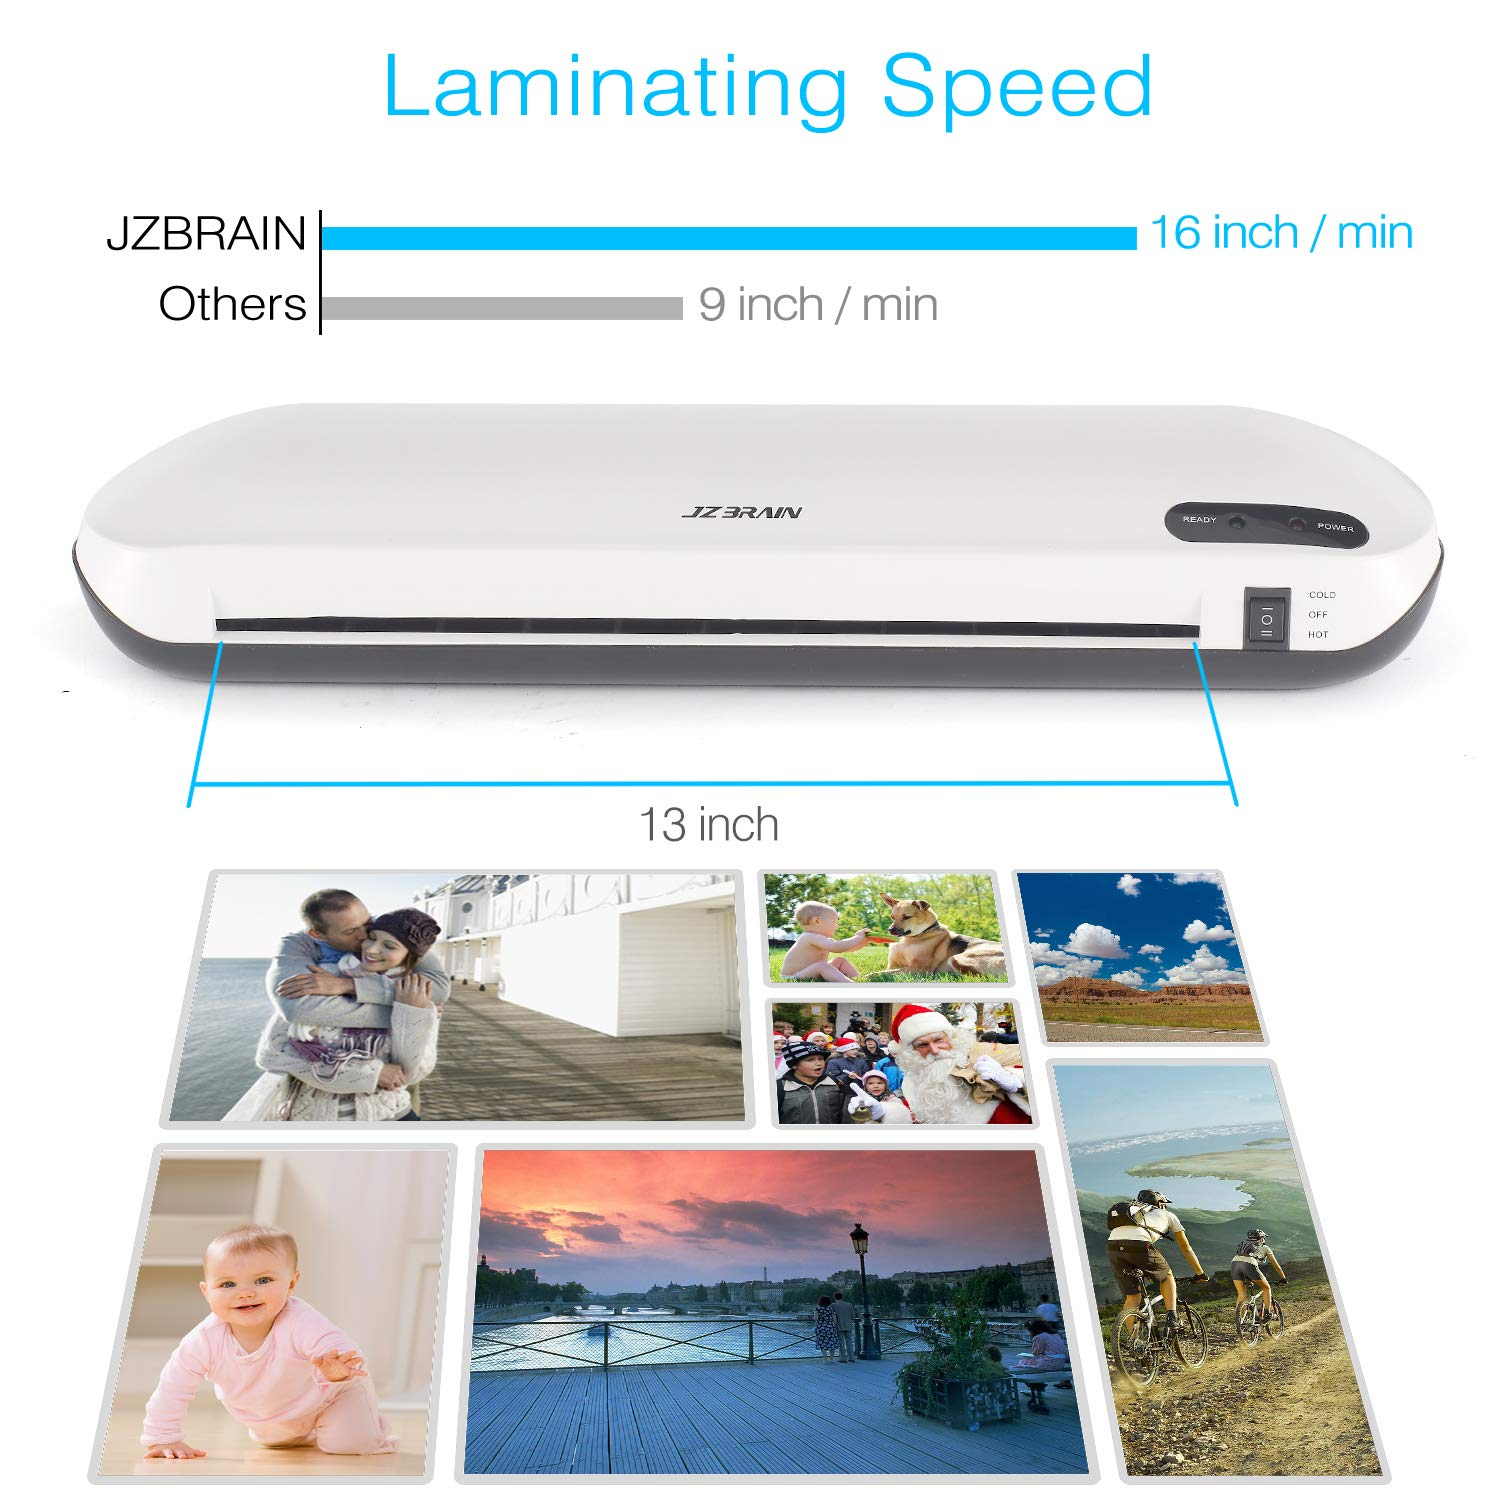 JZBRAIN Laminating Machine, A3 Laminator Machine with Trimmer and Corner Rounder, Two Minutes Quick Warm-Up, Hot & Cold Fast Laminating, 13'' Max Lamination Width (White) by JZBRAIN (Image #2)